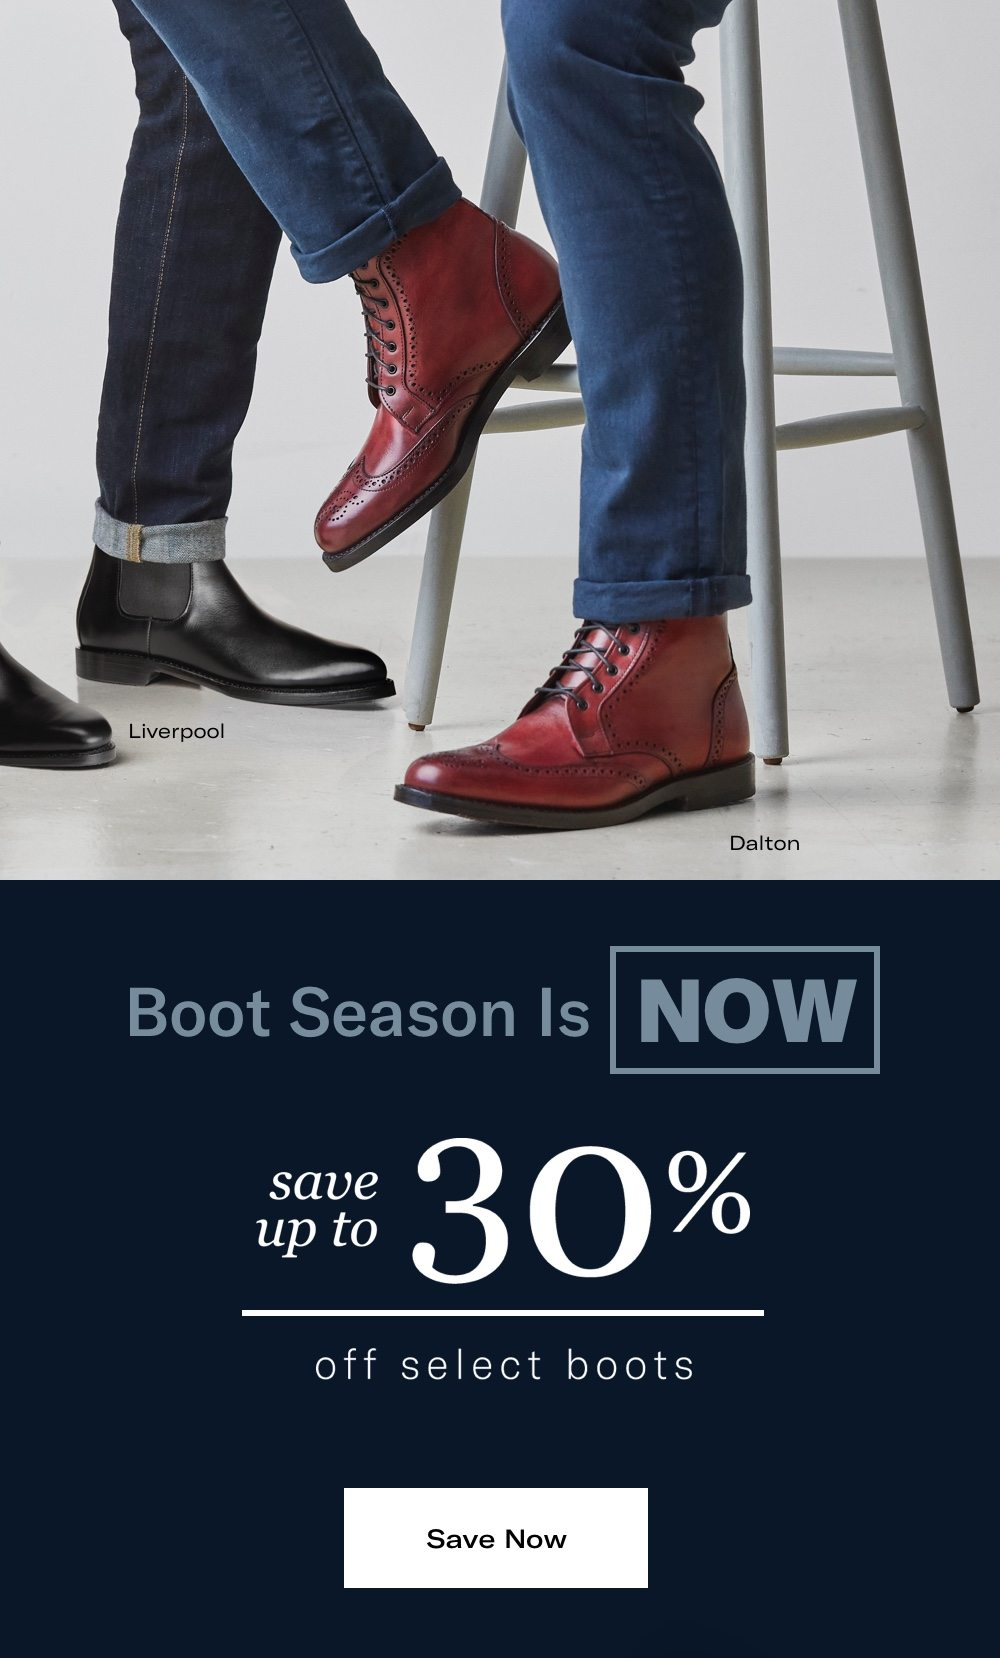 Save Up To 30% Off Select Boots